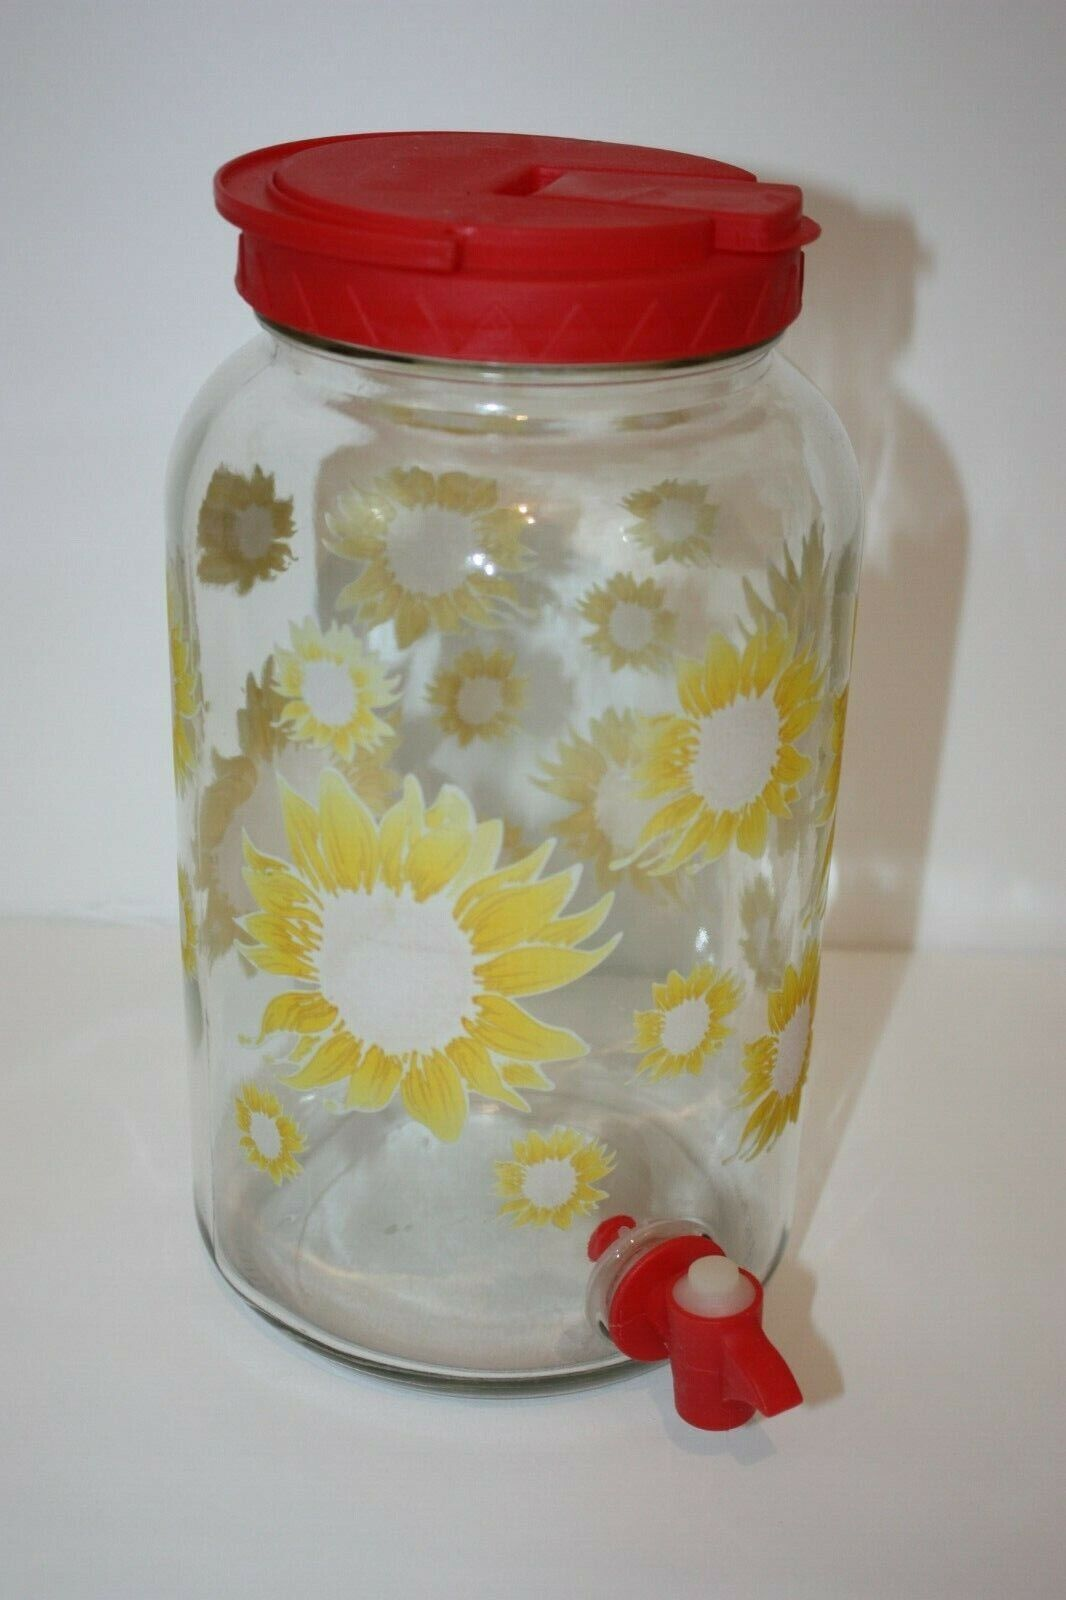 Red Sunflowers Print Glass Sun Tea Jar Jug Pitcher With Spout and Handle